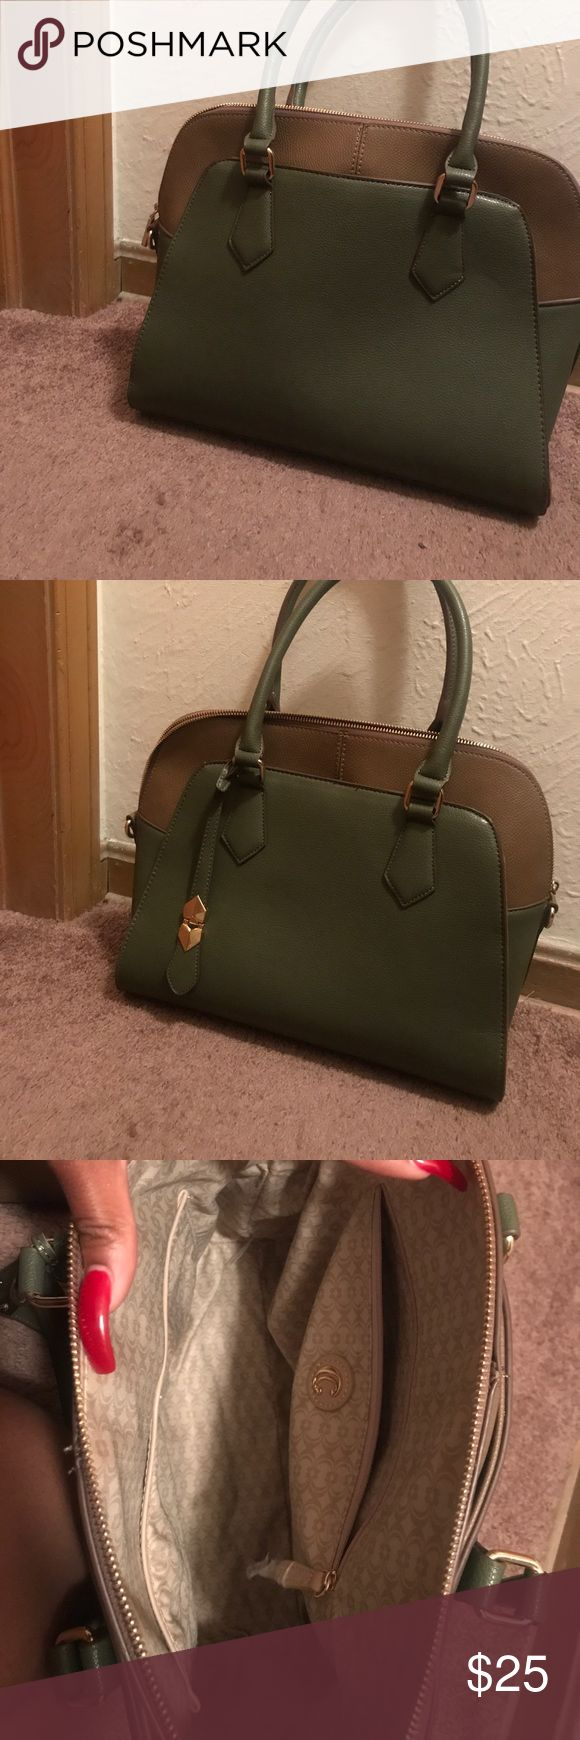 Olive Green Charming Charlie Satchel Olive Green Dome Satchel Charming Charlie's Most Recent Fall Collection! Only Worn Once. I'm Great Condition! She Needs A New Home! Charming Charlie Bags Satchels